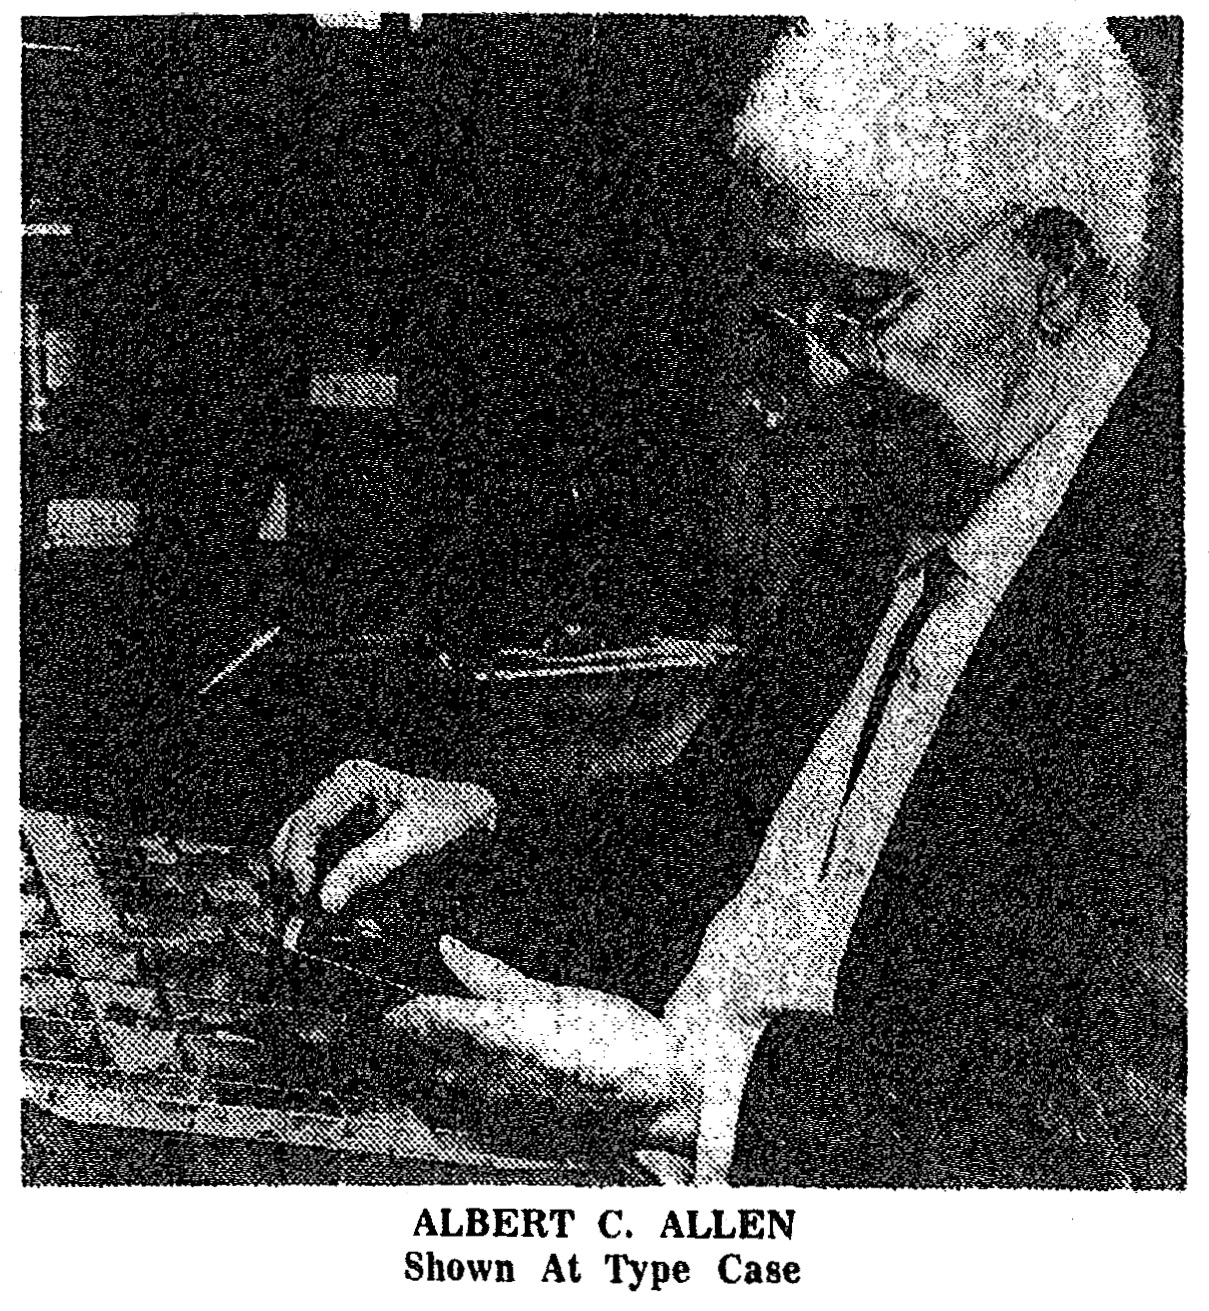 Albert C. Allen, November 30, 1972 Medford Mail Tribune